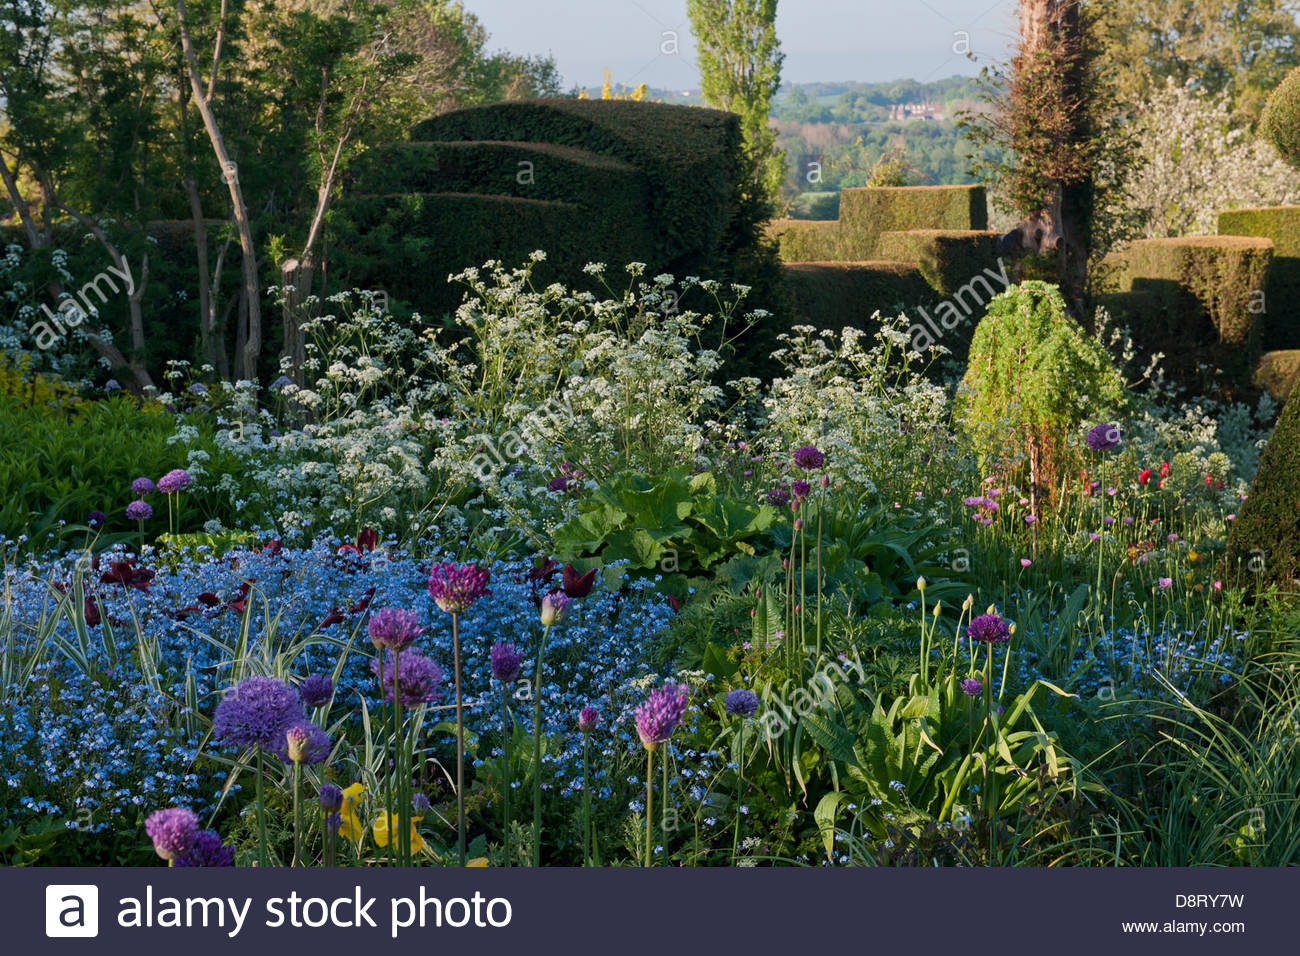 wide informal borders Alliums forget me nots cow parsley Euphorbia geraniums Great Dixter East Sussex England United - Stock Image